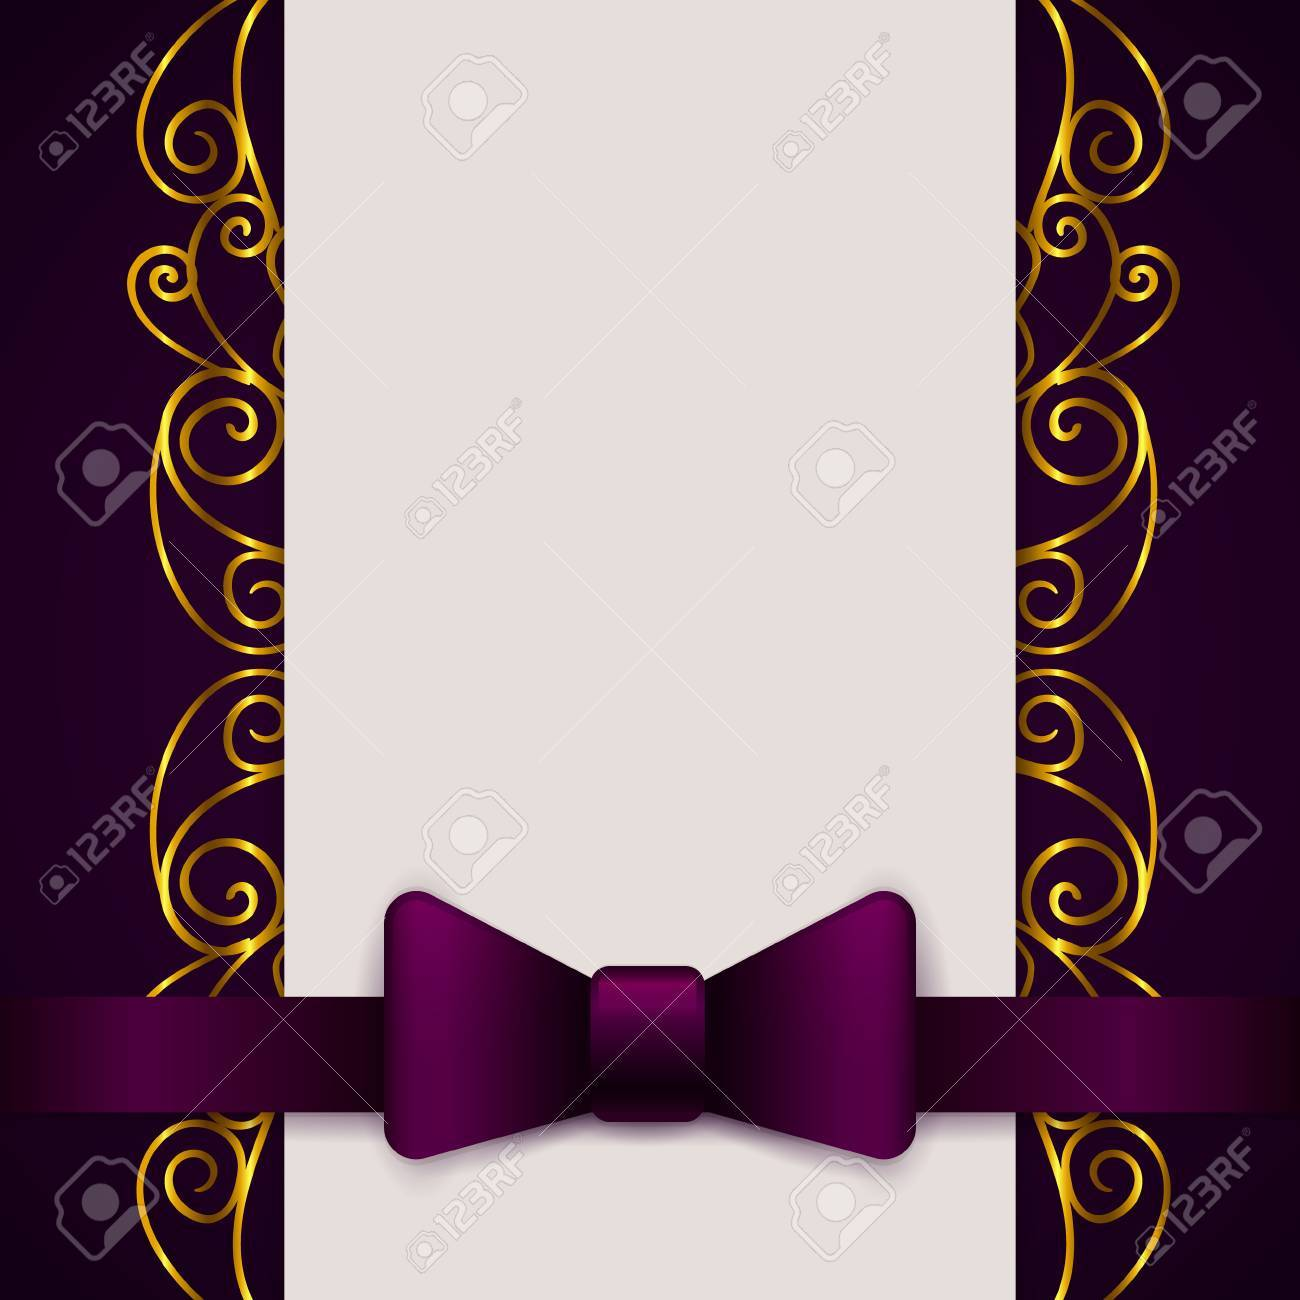 Dark violet vintage greeting card template with bow and ribbon banco de imagens dark violet vintage greeting card template with bow and ribbon vector wedding invitation design anniversary template design for any stopboris Gallery